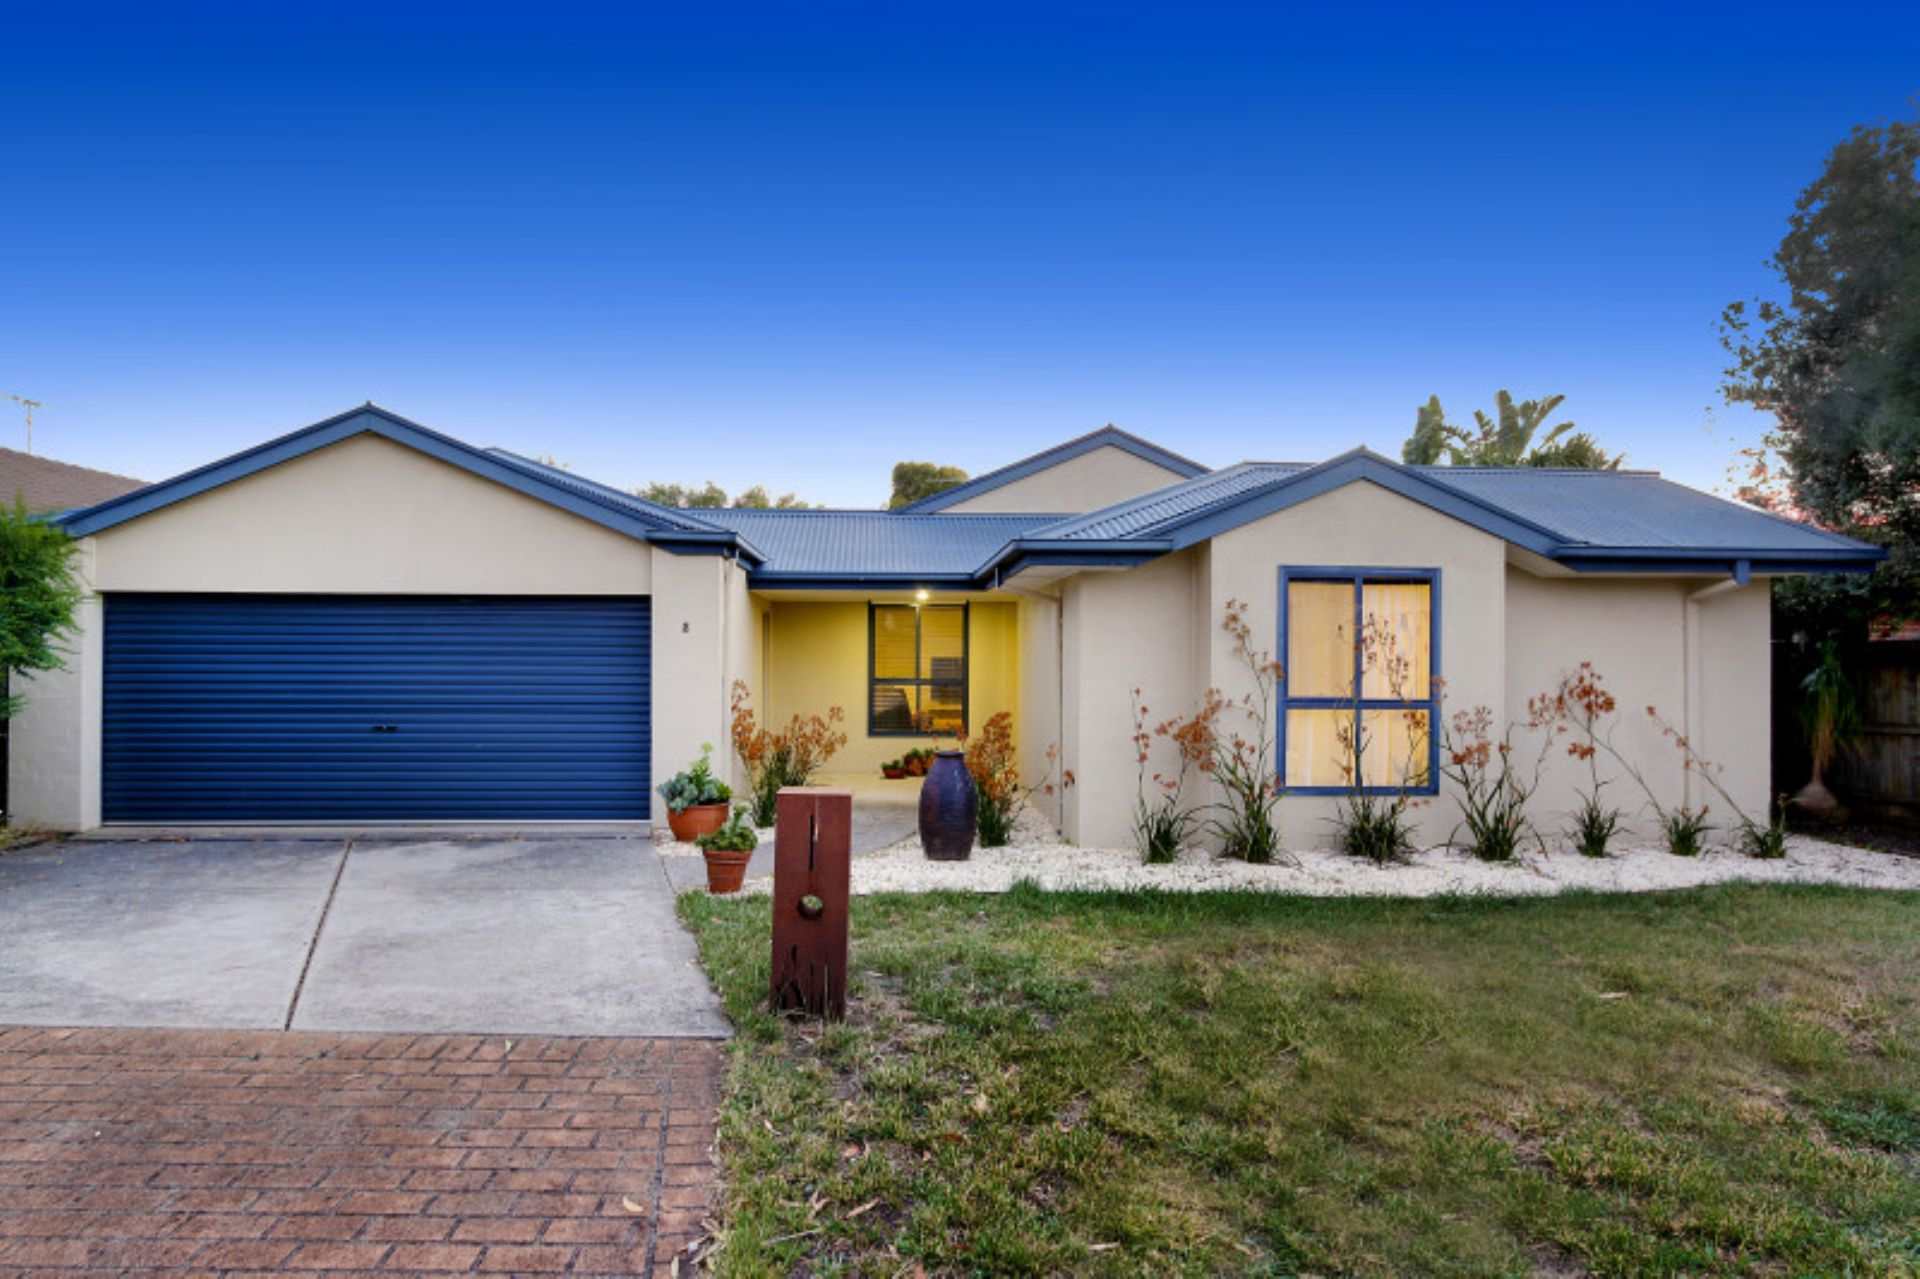 8 Colebrook Court, MORNINGTON, VIC, 3931 - Image